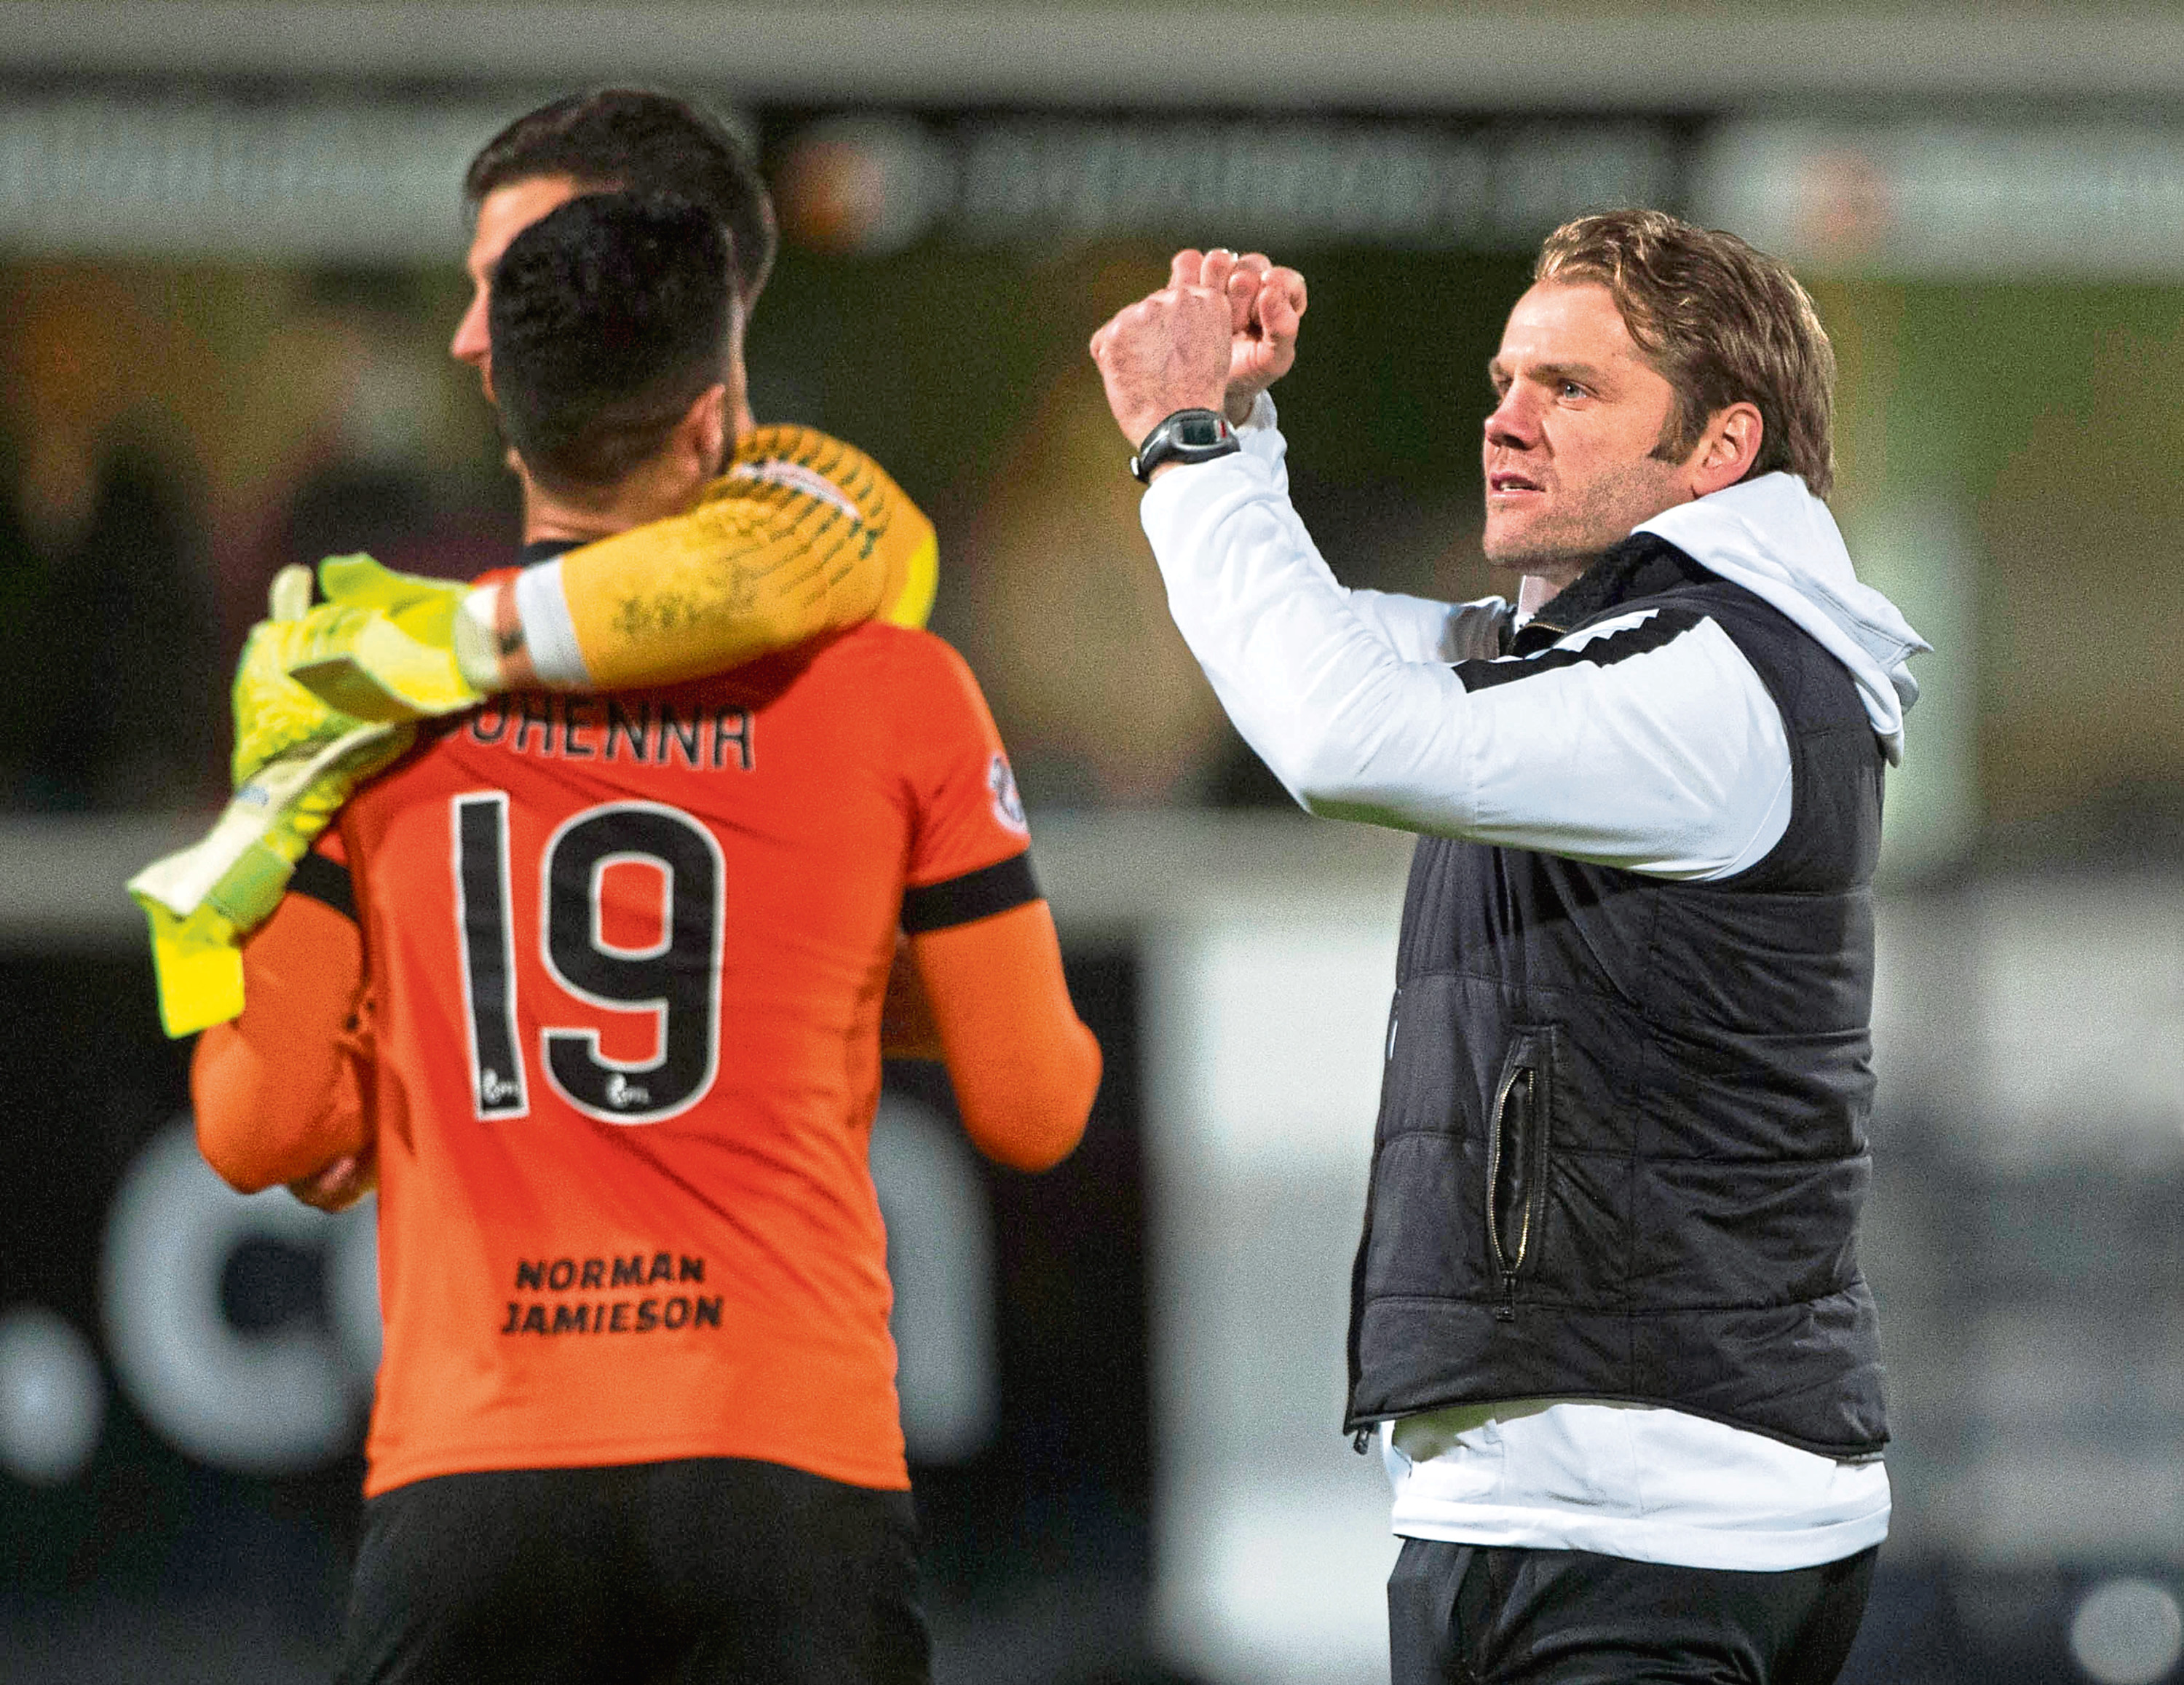 Dundee United manager Robbie Neilson celebrates at full-time.